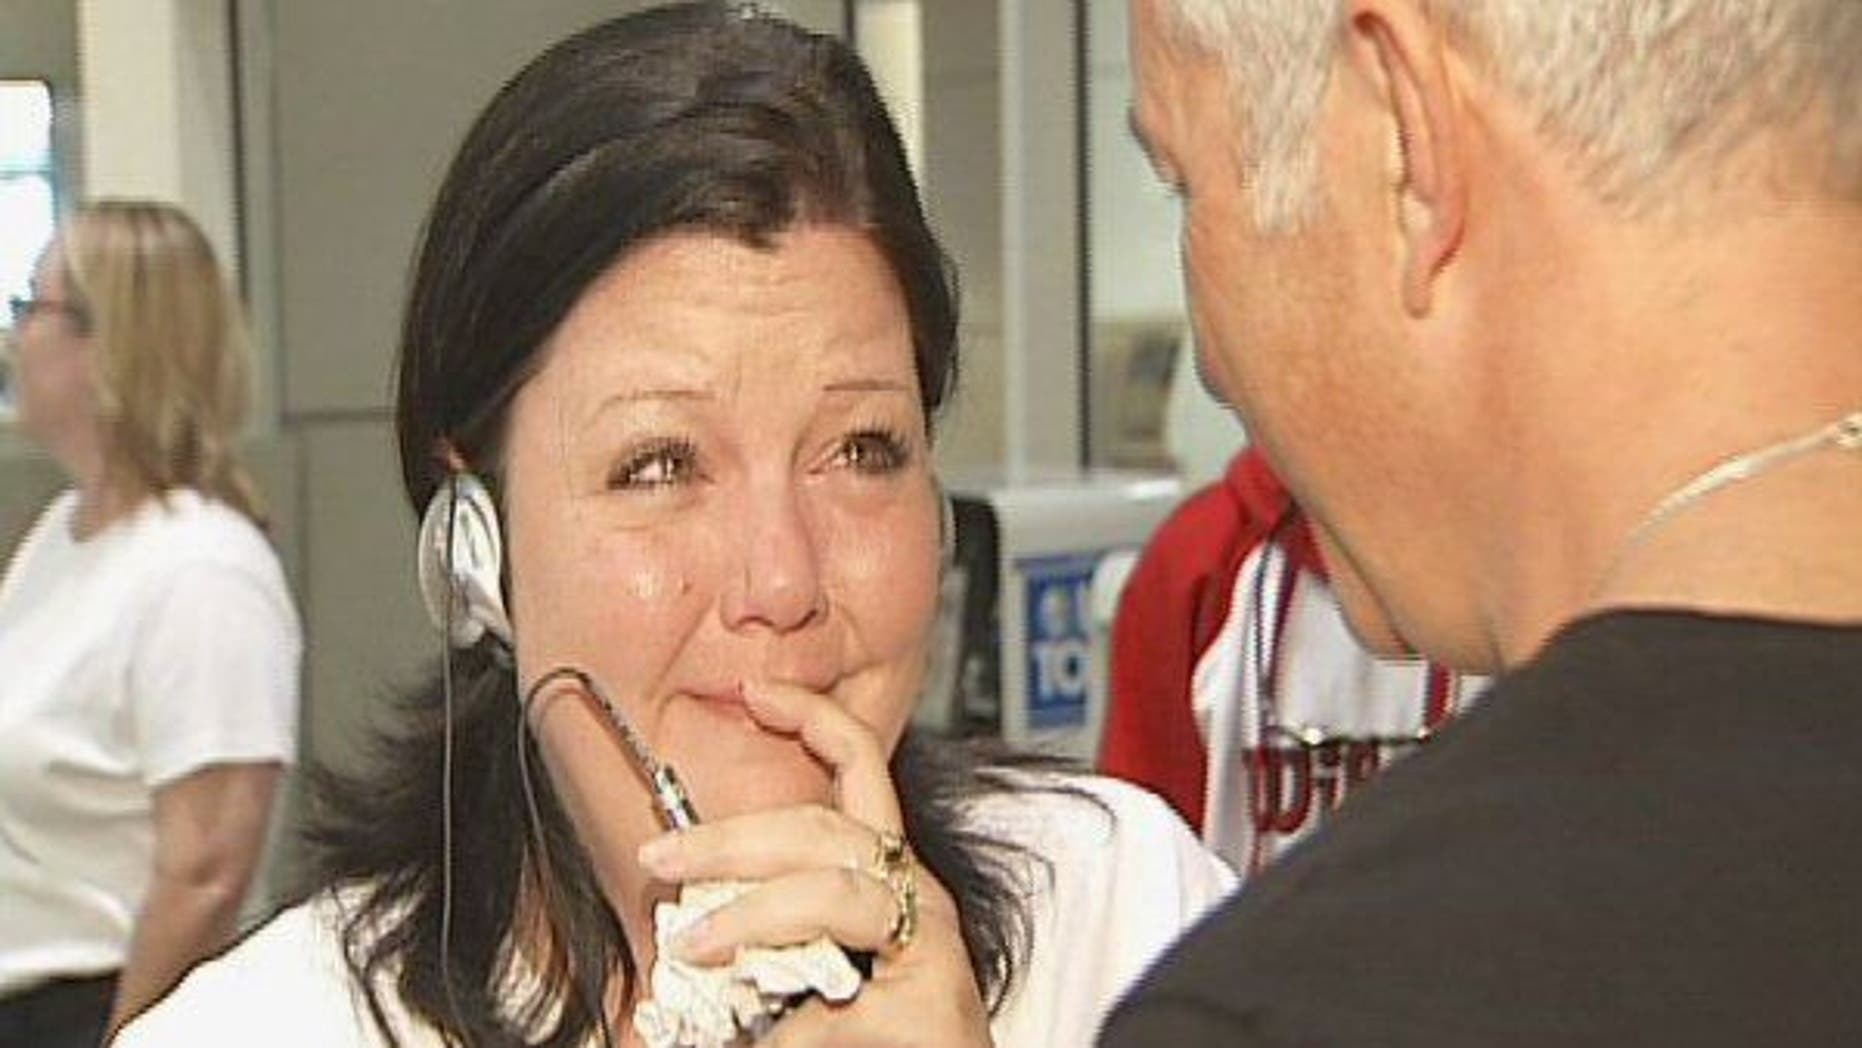 April Beaver listens to her deceased son Caleb's heart, beating in donor recipient Chuck Shelton's chest, through a stethoscope.